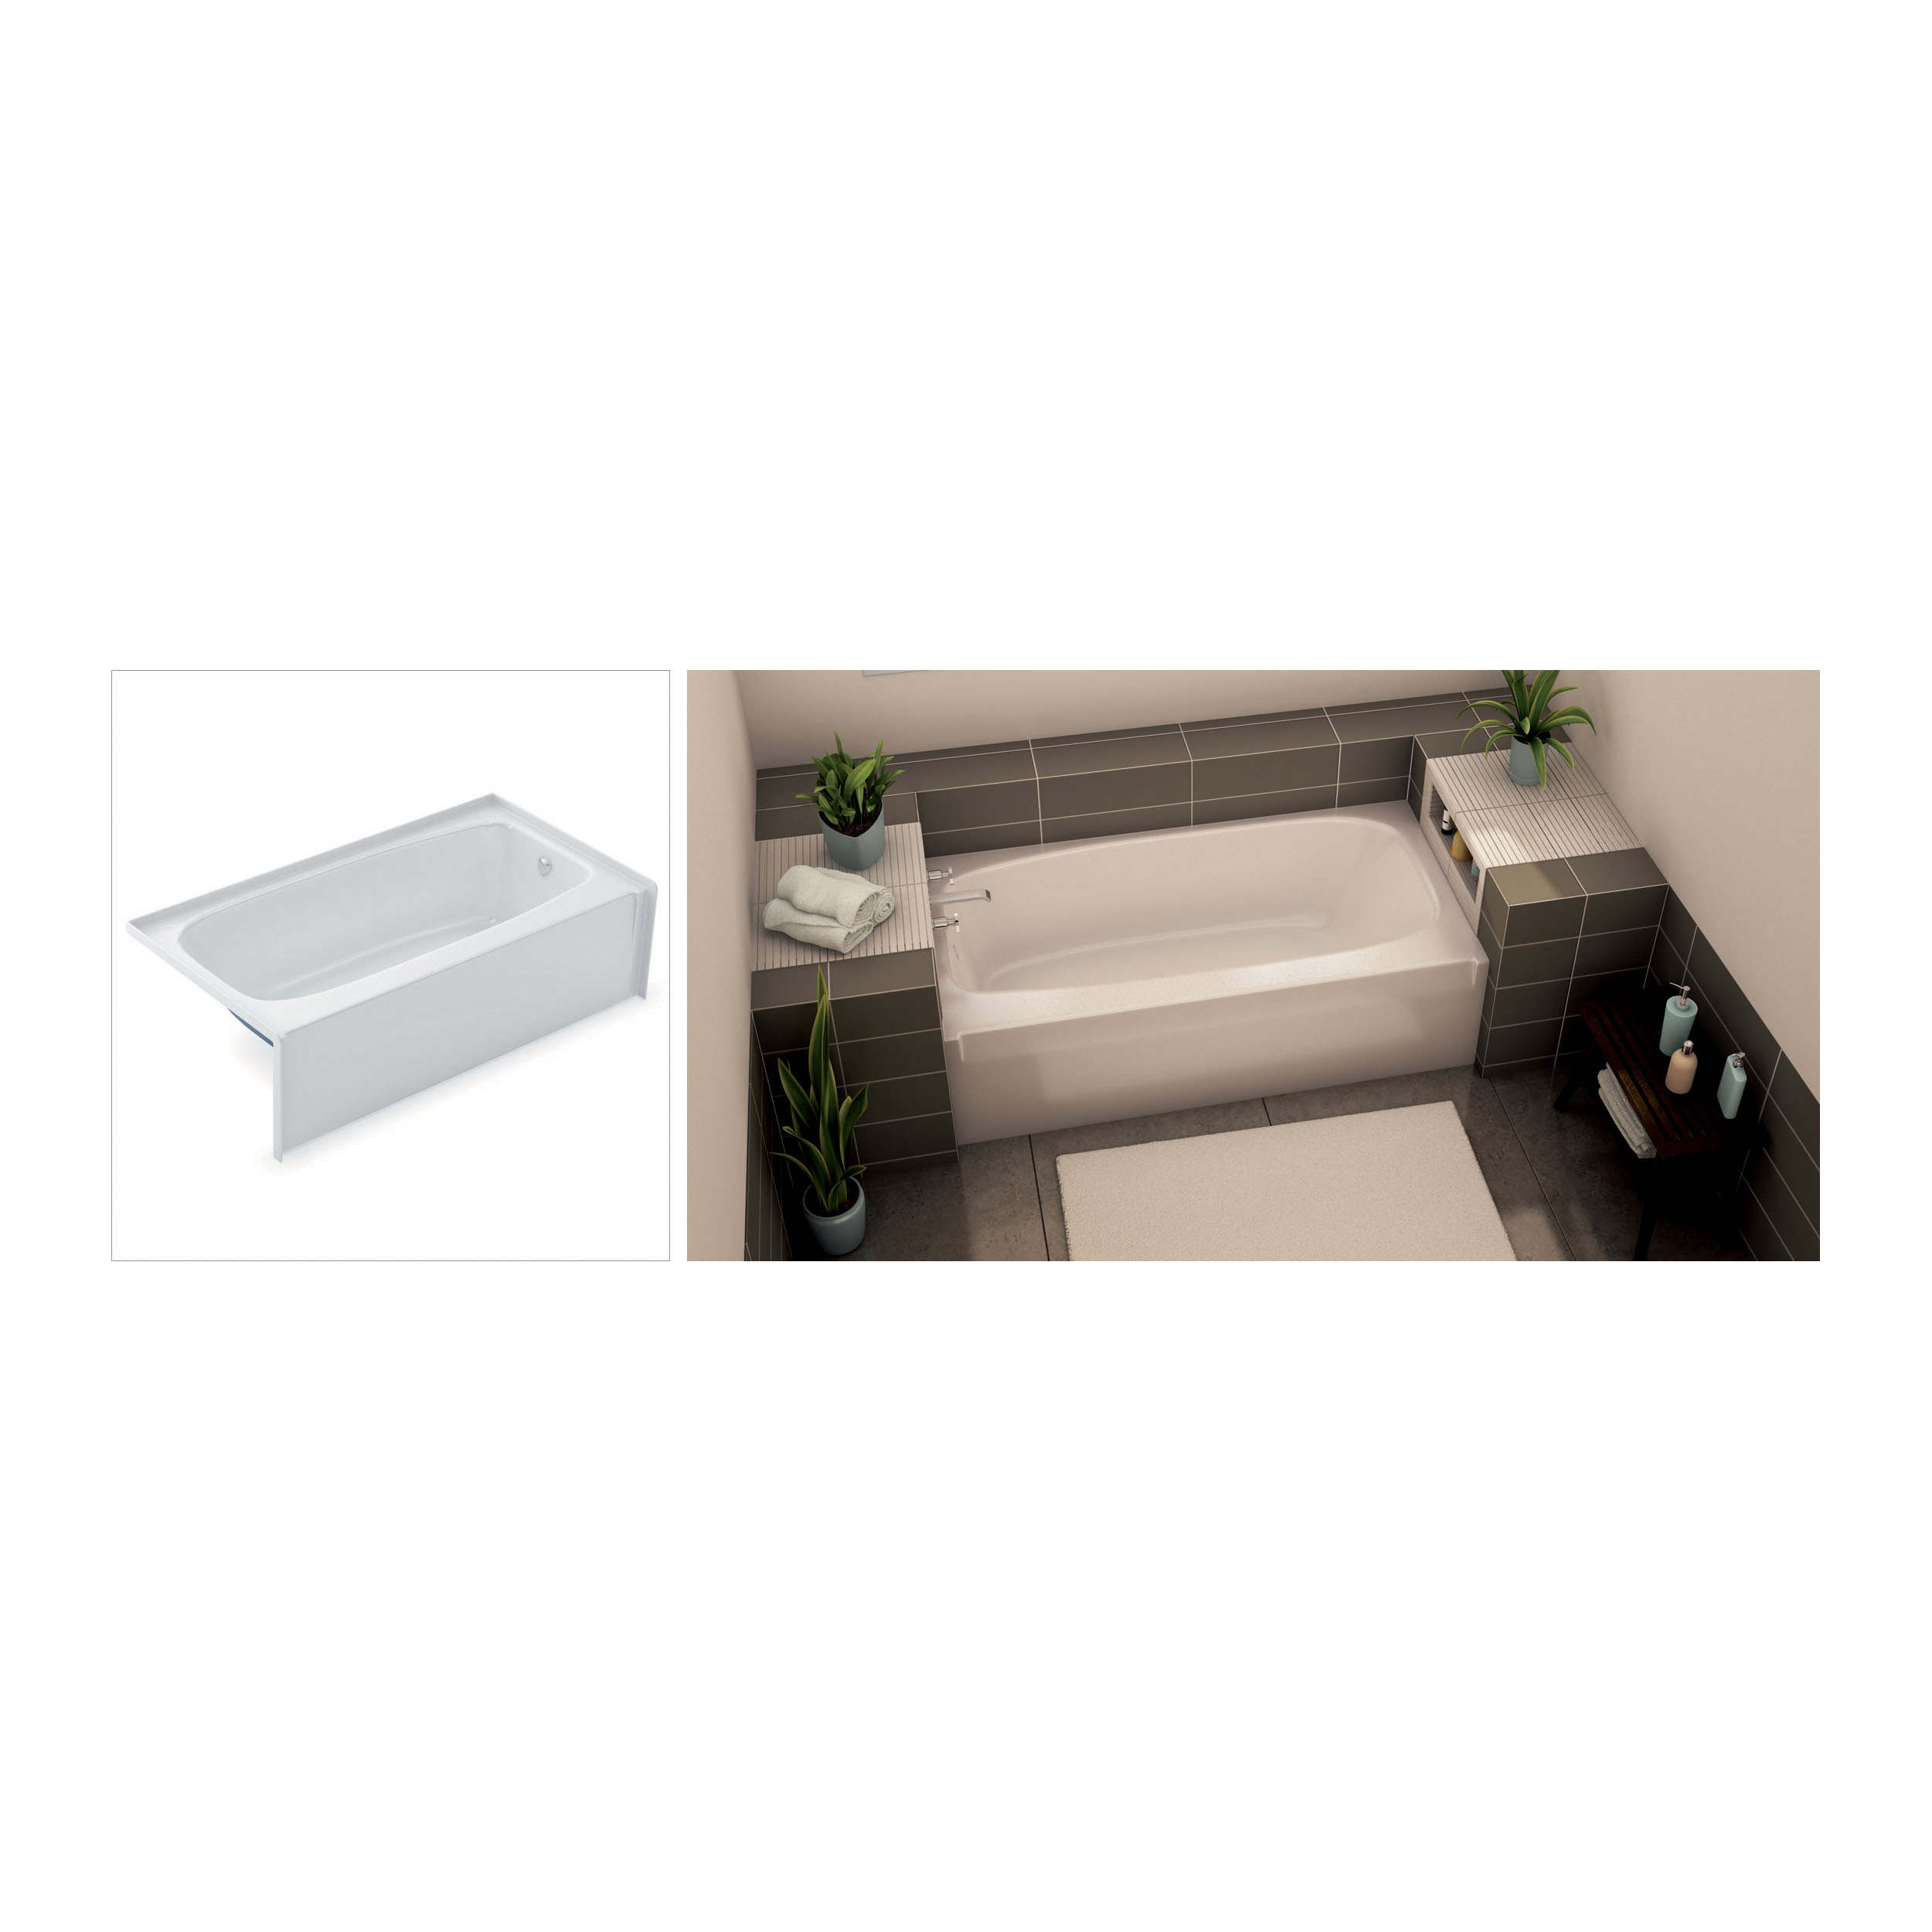 Aker® by MAAX 141078-R-000-002 TO-3060 Bathtub, Rectangular, 60 in L x 31 in W, Right Drain, White, Domestic